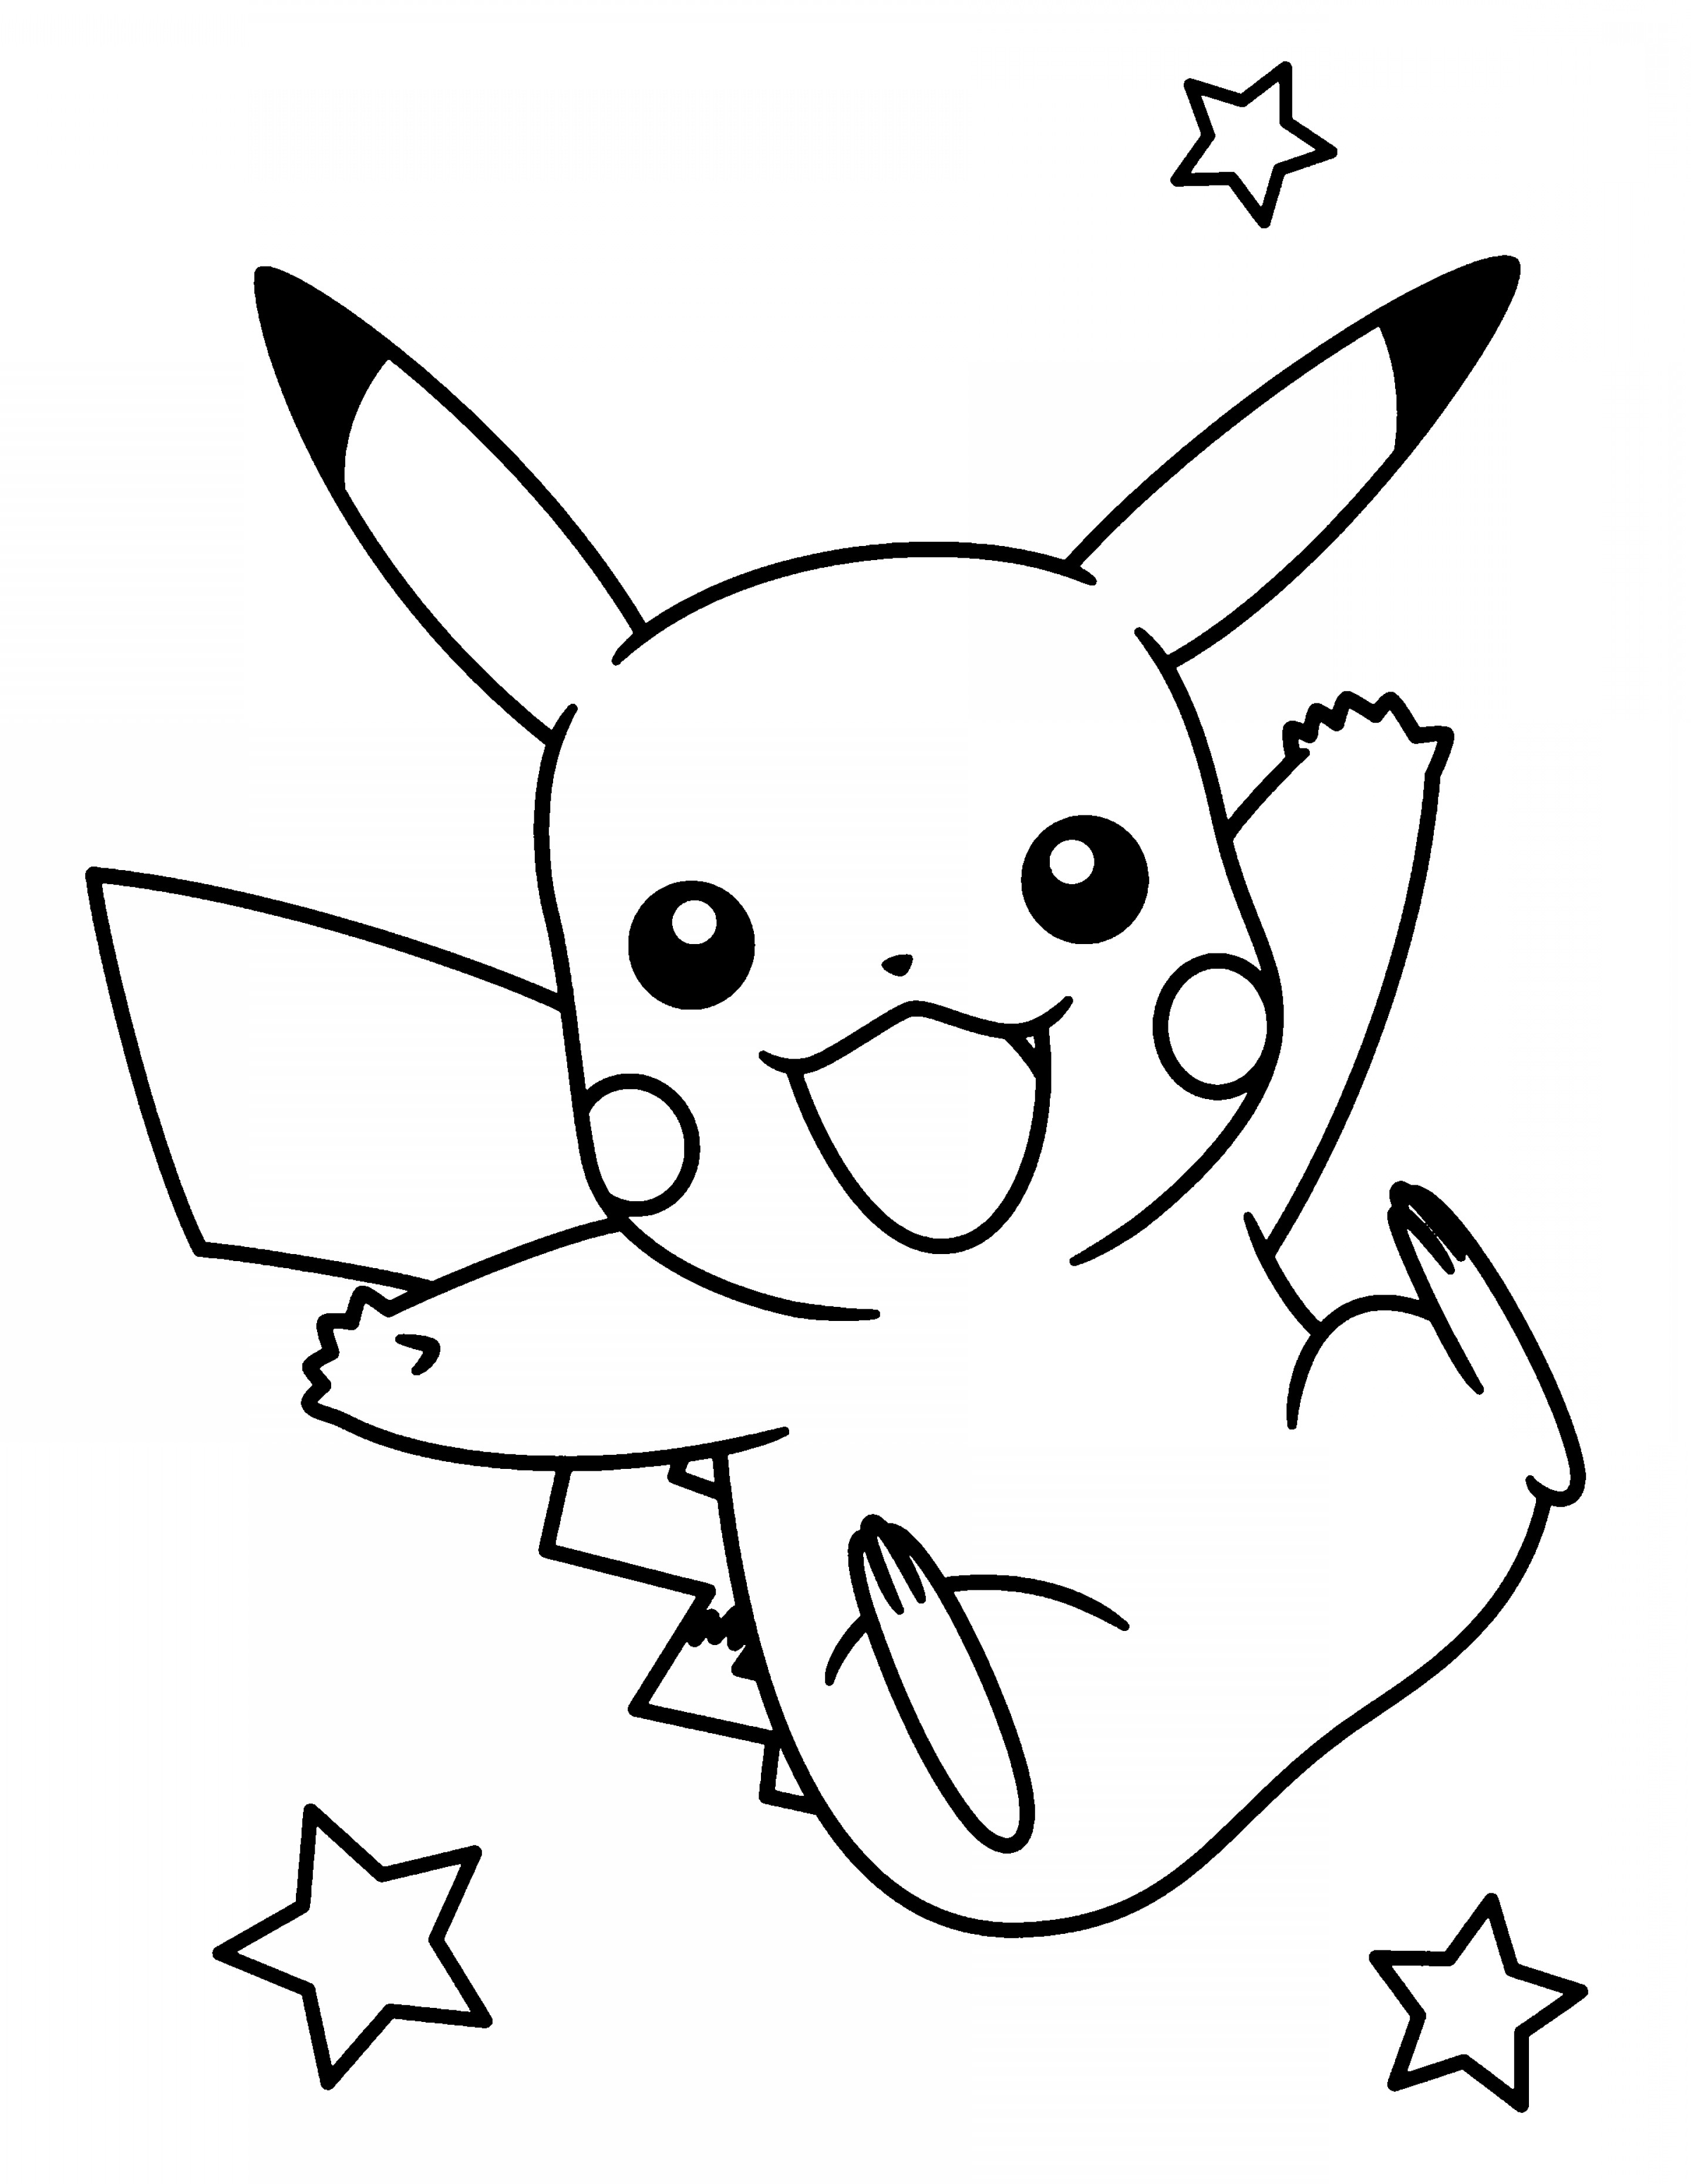 clip black and white library Png soidergi . Pikachu clipart black and white